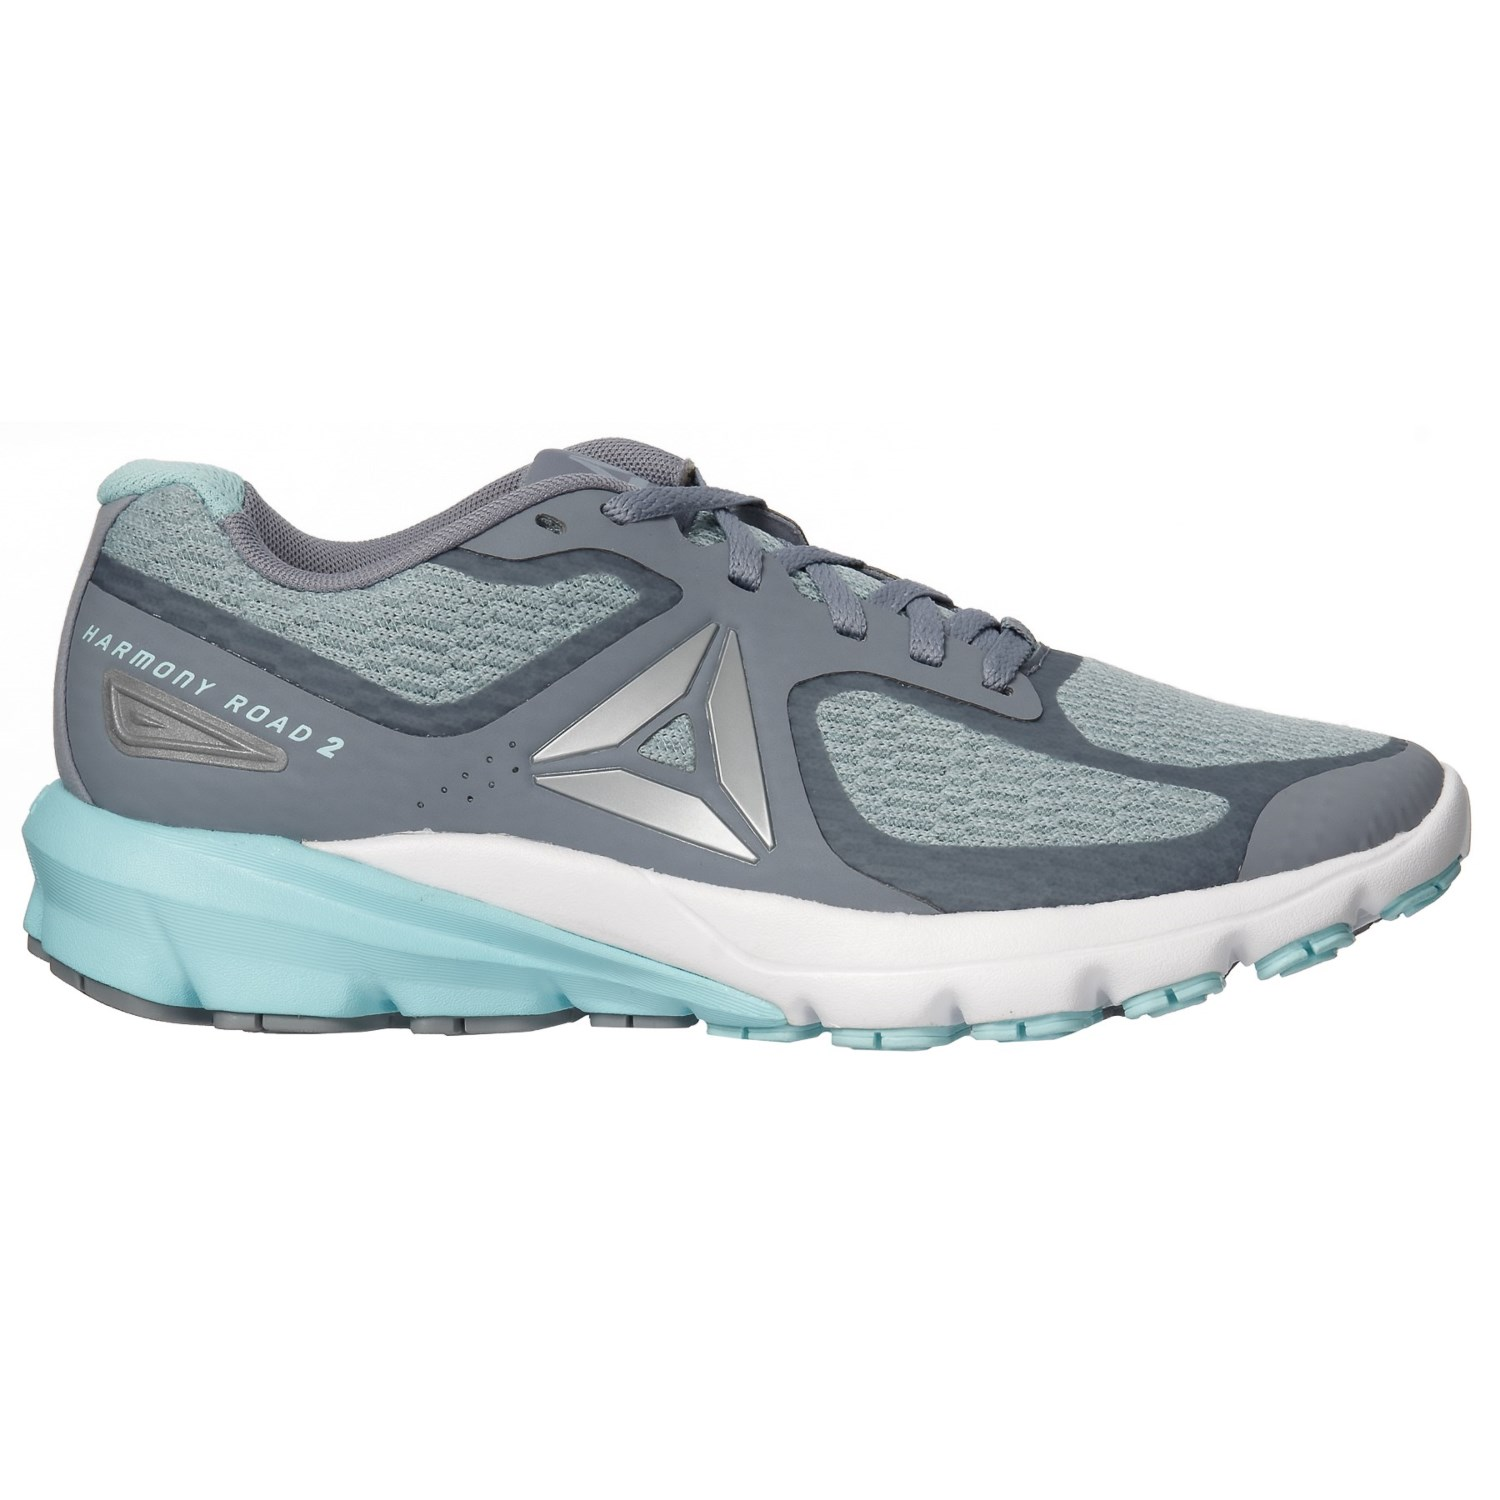 4b42d094f Reebok OSR Harmony Road 2 Running Shoes (For Women) - Save 58%